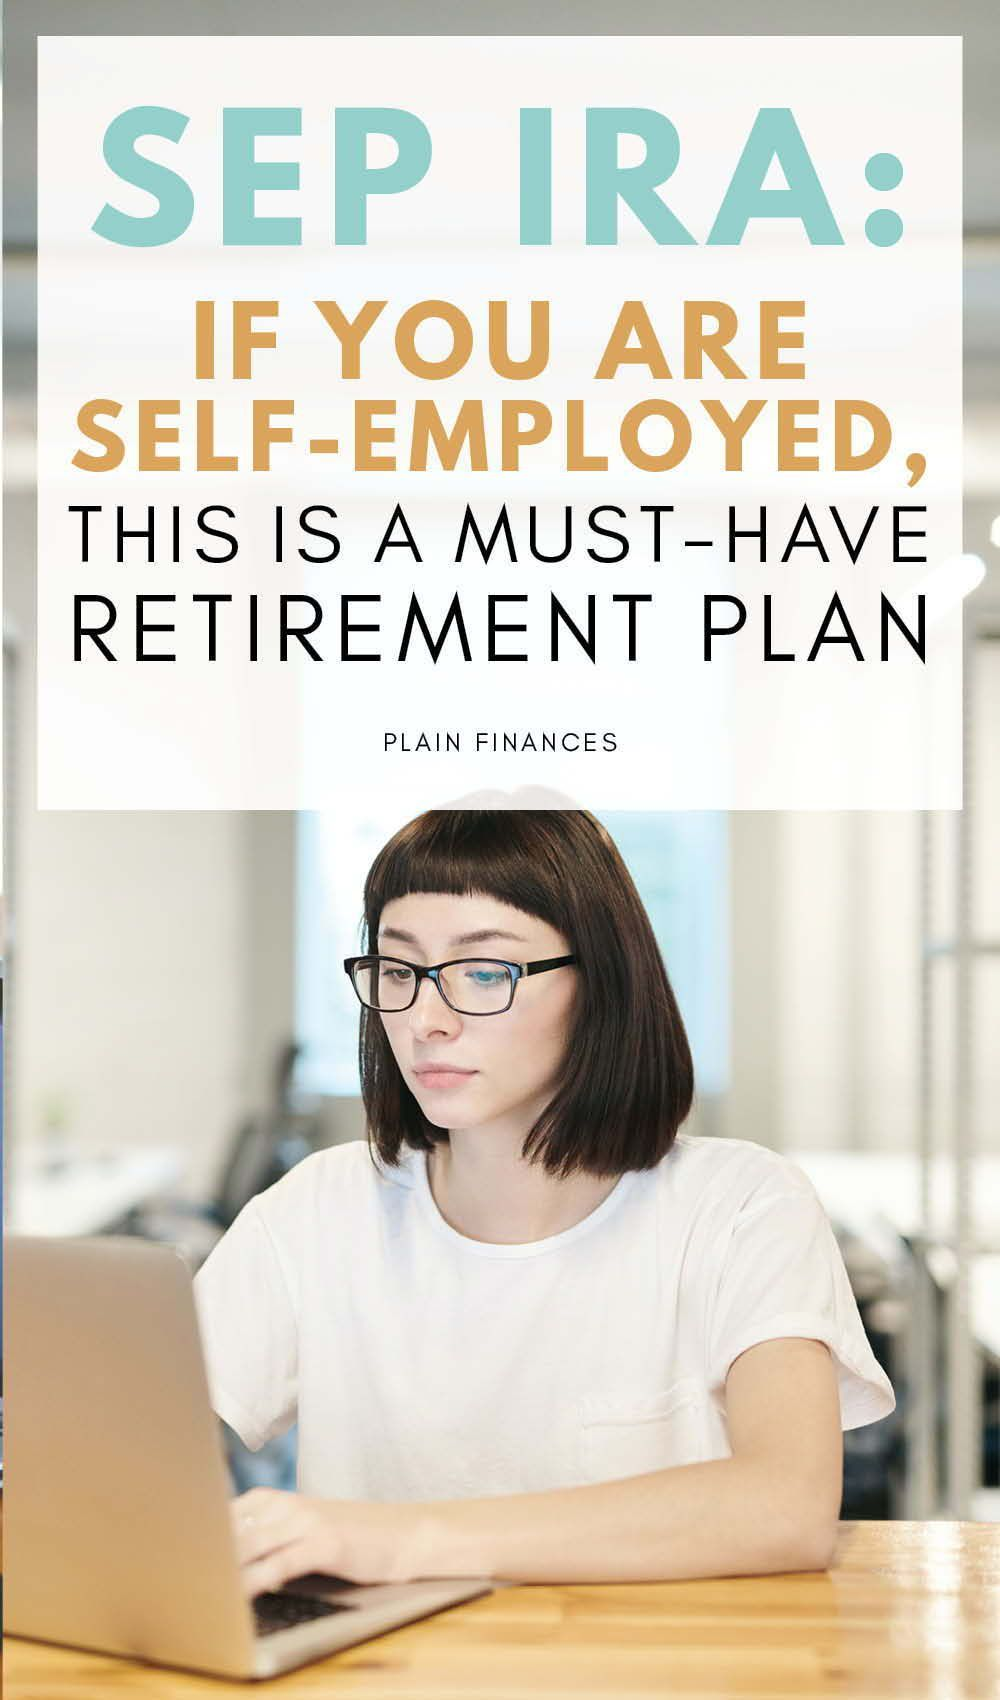 How To Save Money By Contributing to a SEP IRA plan | Investment Tips | Are you self employed and wanting to maximize your retirement contribution and put more money to work? Click to read how SEP IRA is a benefit for business owners because of minimal paperwork requirements and flexible contributions. | Investing for Retirement | Retirement Saving Strategies and Tips | Plain Finances #SEPIRA #selfemployed #business #entrepreneur #retiremenetsavings #personalfinance